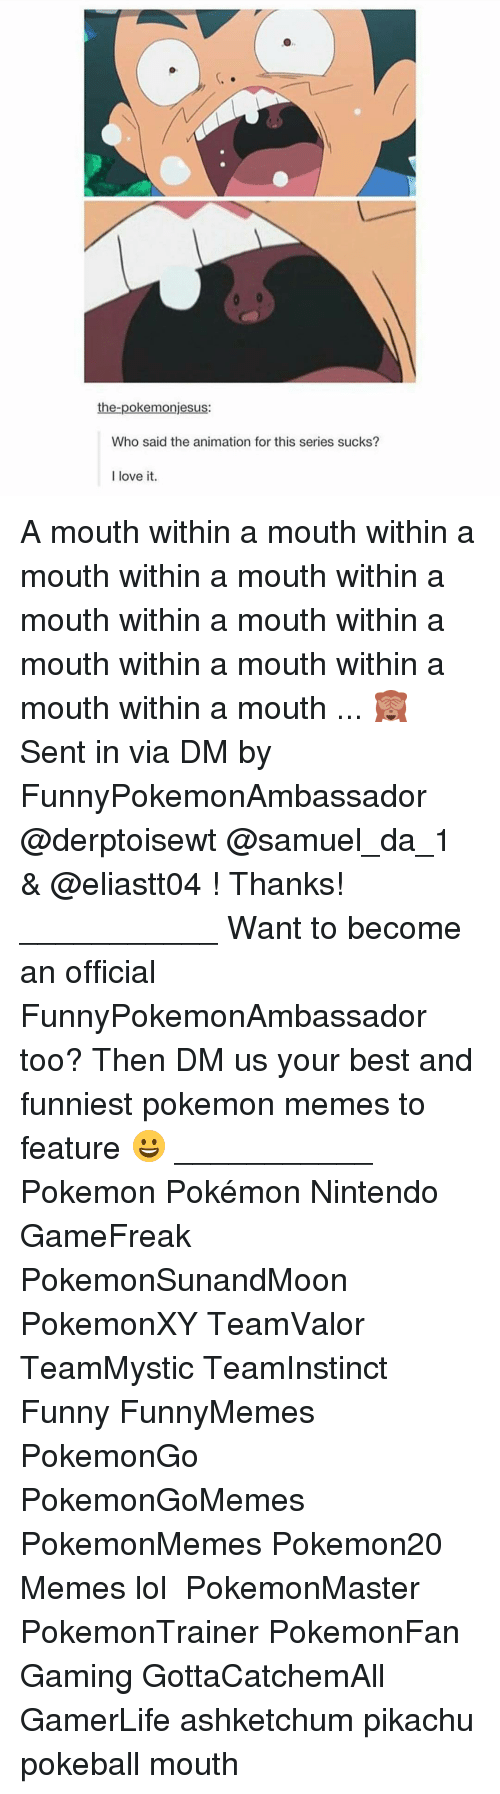 Memes, Pikachu, and 🤖: the-poke monjesus:  Who said the animation for this series sucks?  I love it. A mouth within a mouth within a mouth within a mouth within a mouth within a mouth within a mouth within a mouth within a mouth within a mouth ... 🙈 Sent in via DM by FunnyPokemonAmbassador @derptoisewt @samuel_da_1 & @eliastt04 ! Thanks! ___________ Want to become an official FunnyPokemonAmbassador too? Then DM us your best and funniest pokemon memes to feature 😀 ___________ Pokemon Pokémon Nintendo GameFreak PokemonSunandMoon PokemonXY TeamValor TeamMystic TeamInstinct Funny FunnyMemes PokemonGo PokemonGoMemes PokemonMemes Pokemon20 Memes lol ポケットモンスター PokemonMaster PokemonTrainer PokemonFan Gaming GottaCatchemAll GamerLife ashketchum pikachu pokeball mouth